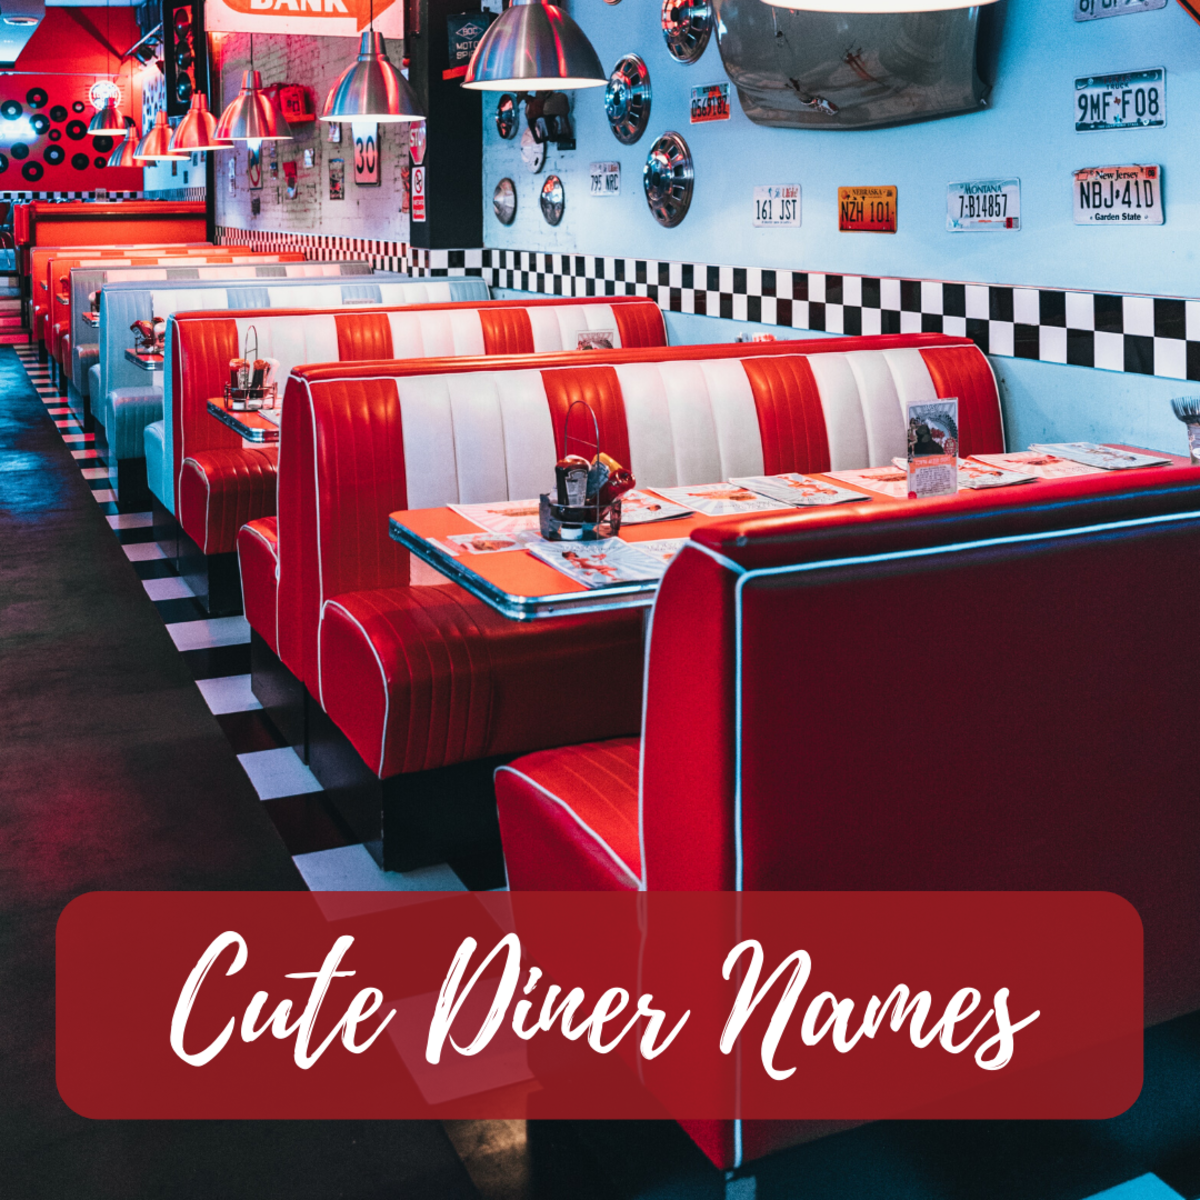 Having a clever or catchy diner name will help you stand out from your competition.